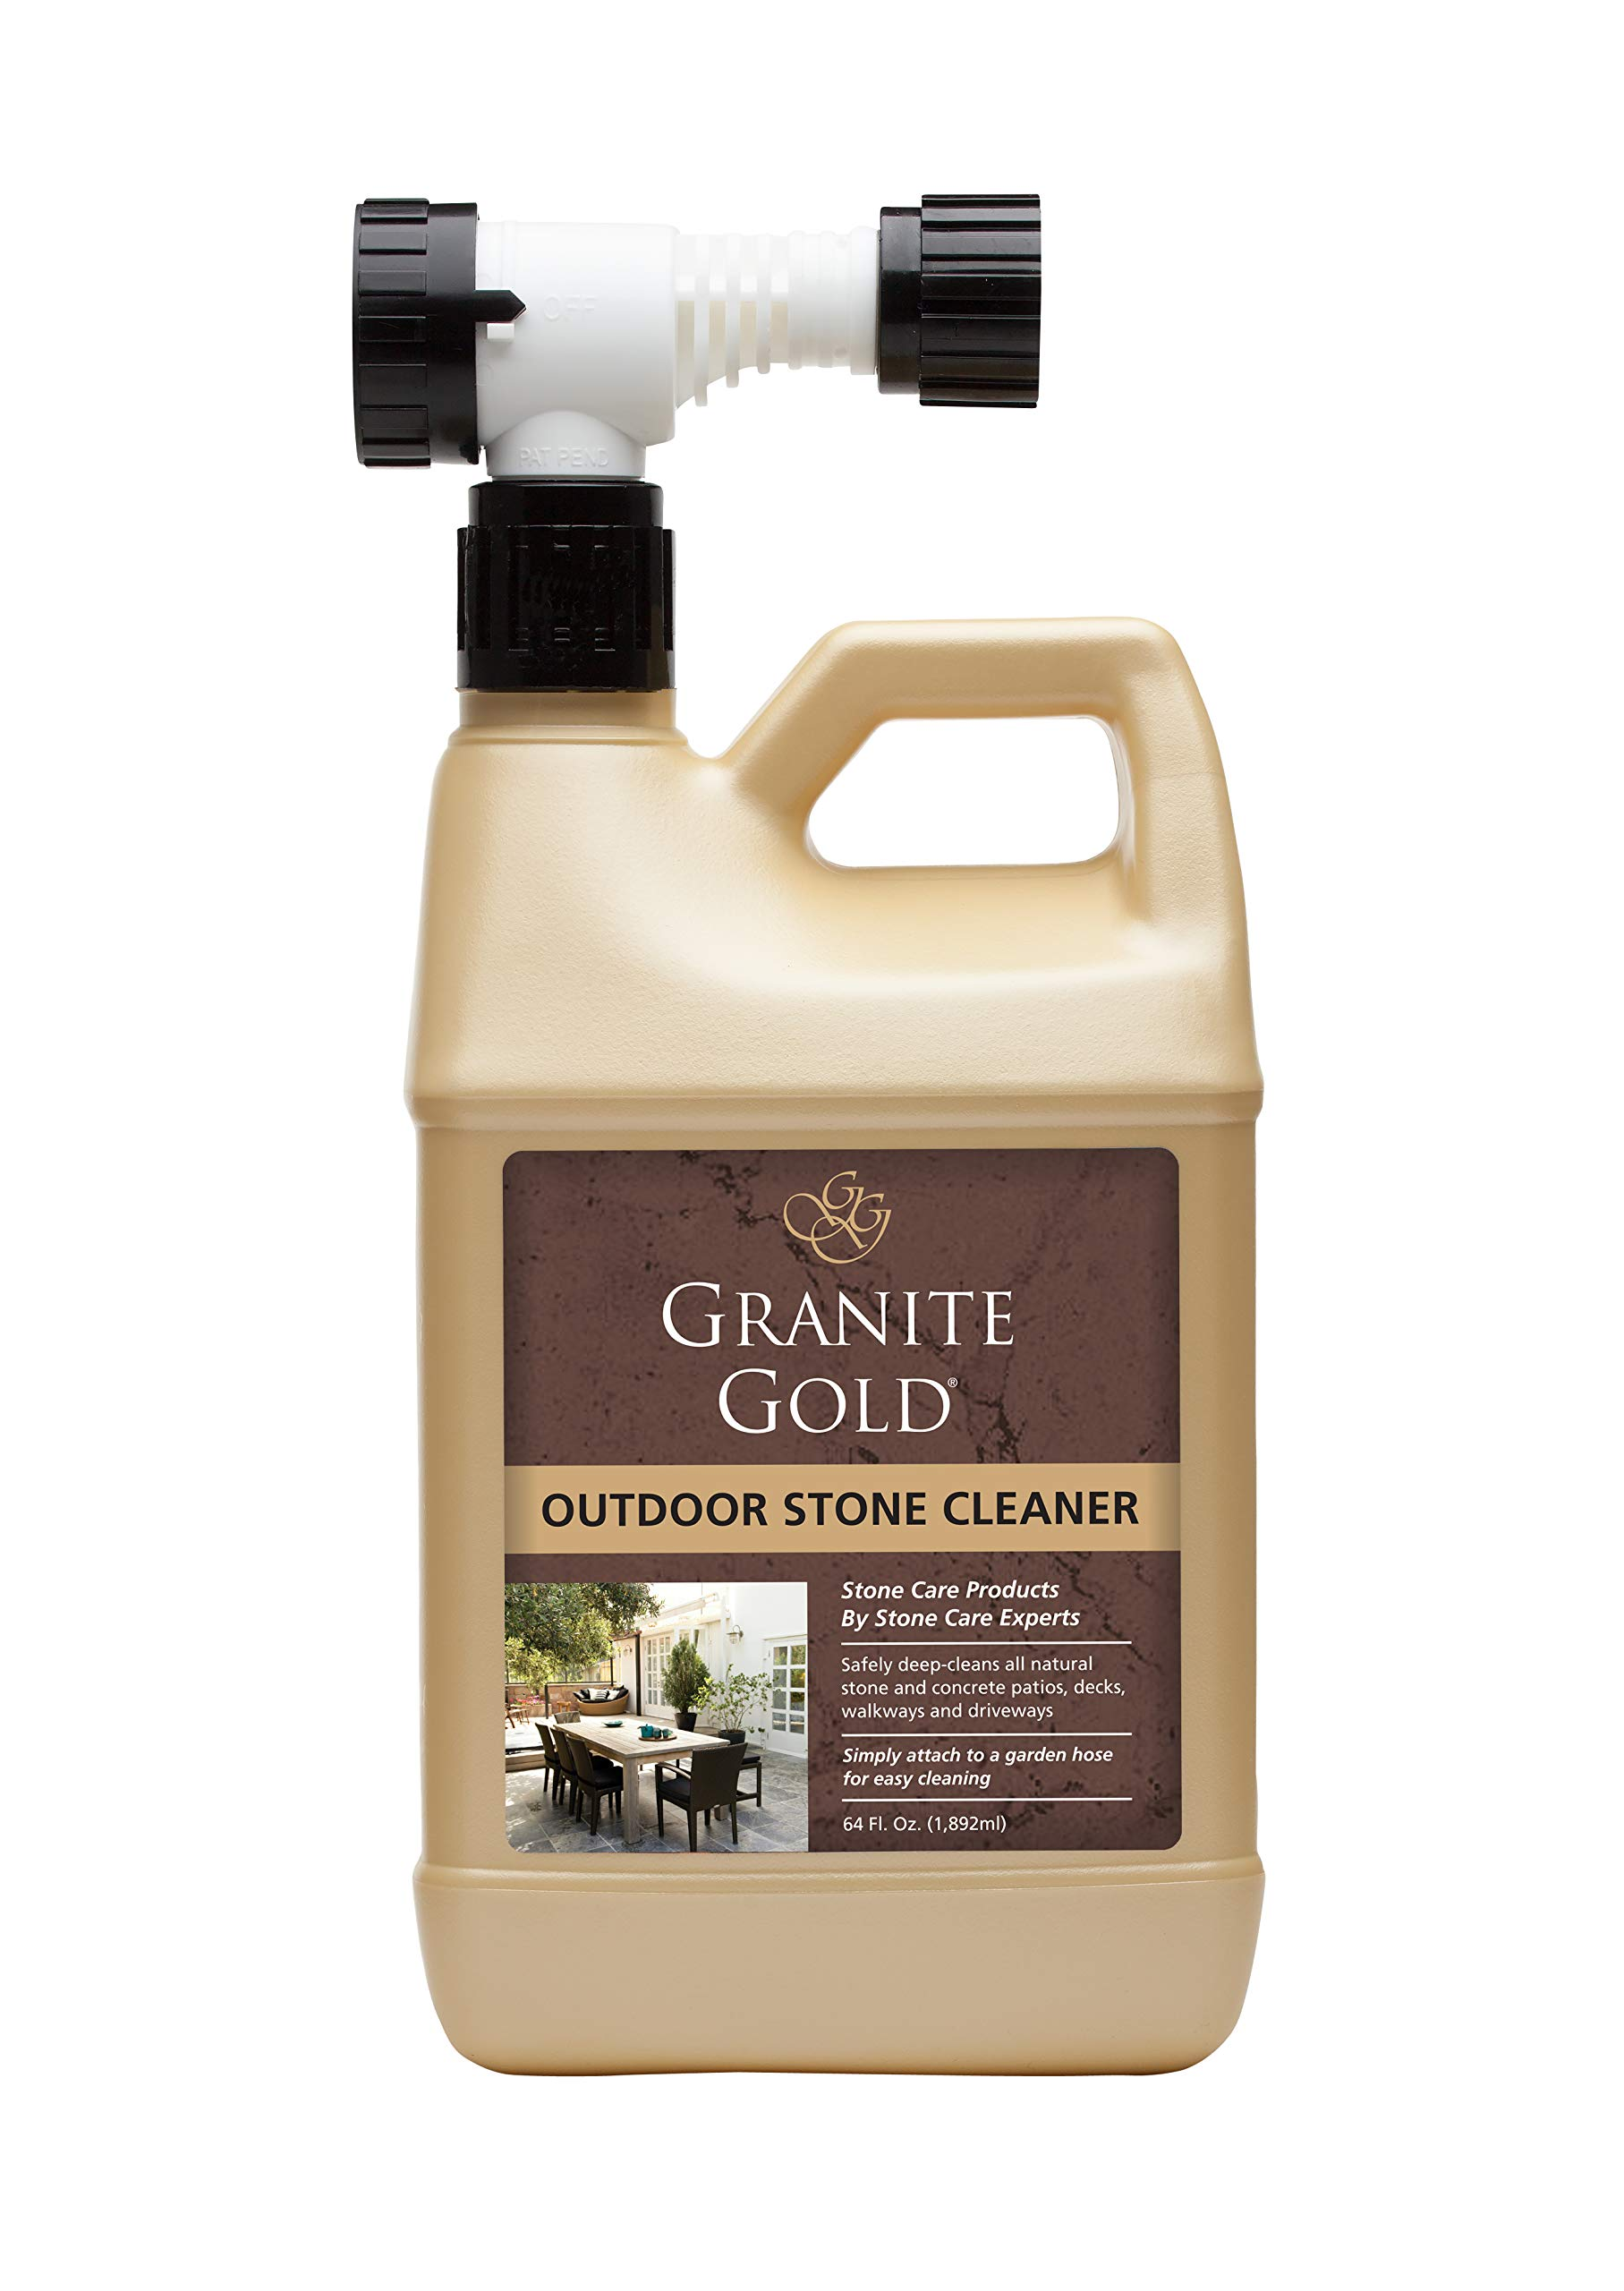 Granite Gold Outdoor Stone Cleaner - Deep Cleans Stone And Concrete Patios, Decks, Driveways - 64 Ounces by Granite Gold